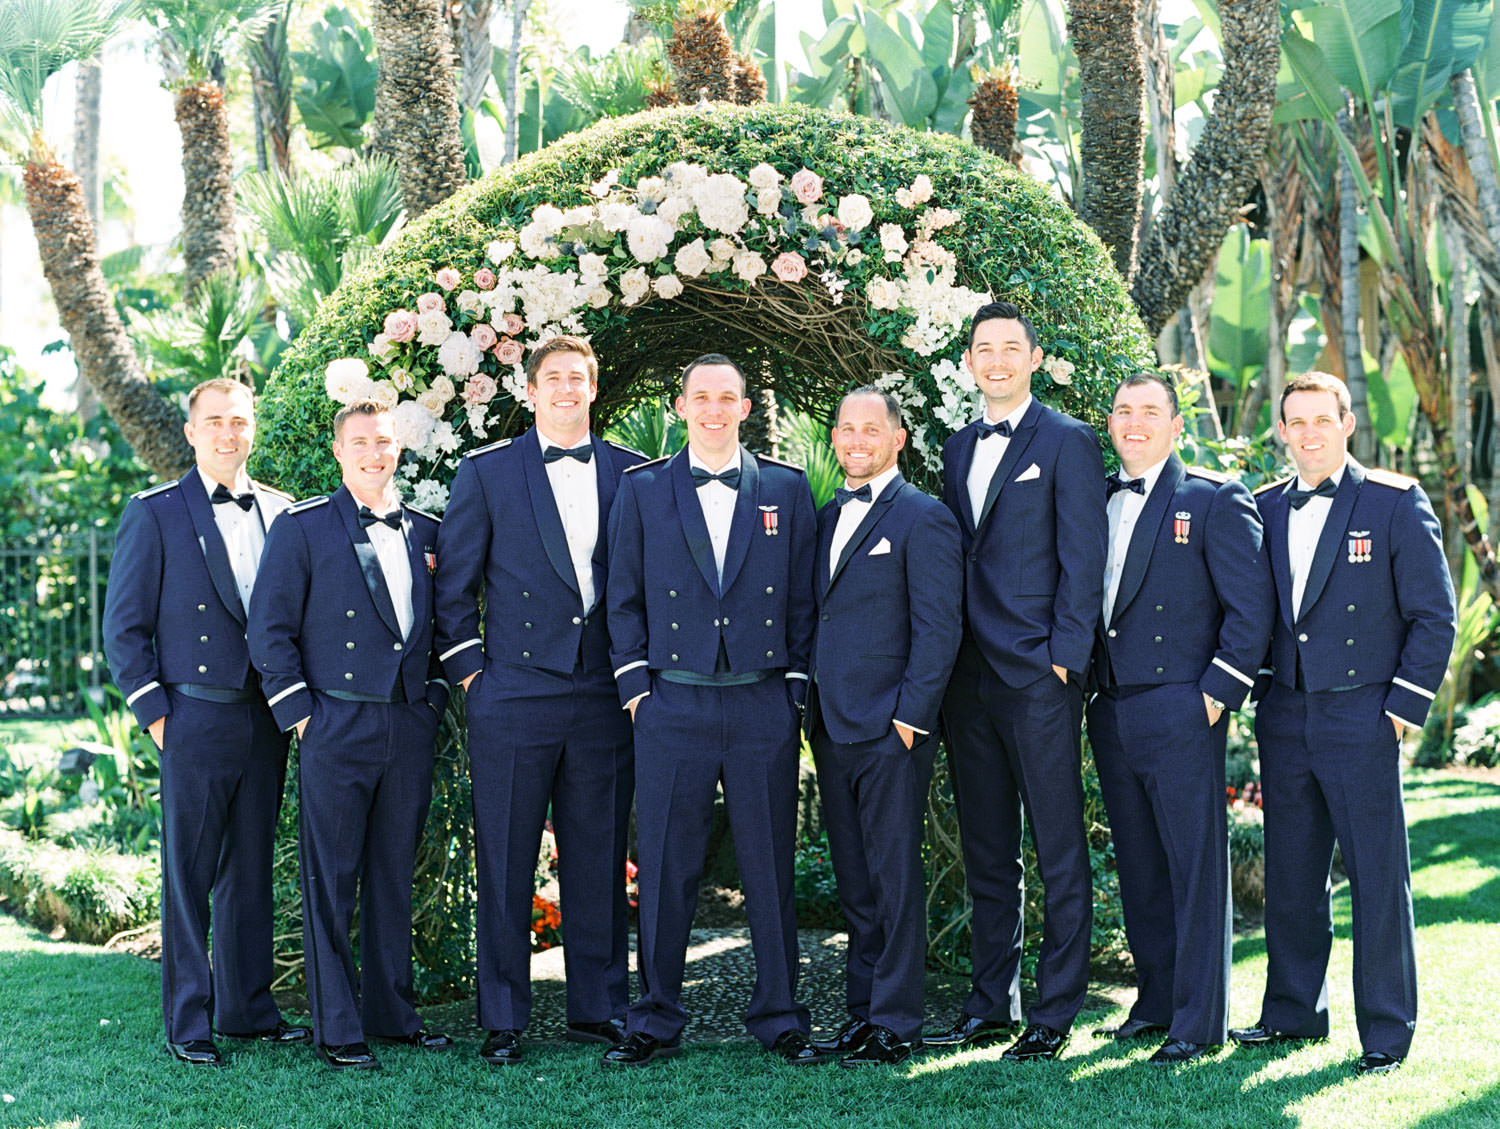 Groomsmen in air force and classic navy tuxedos in front of a large floral arch captured on film. Wedding at Humphreys Half Moon Inn by Cavin Elizabeth Photography